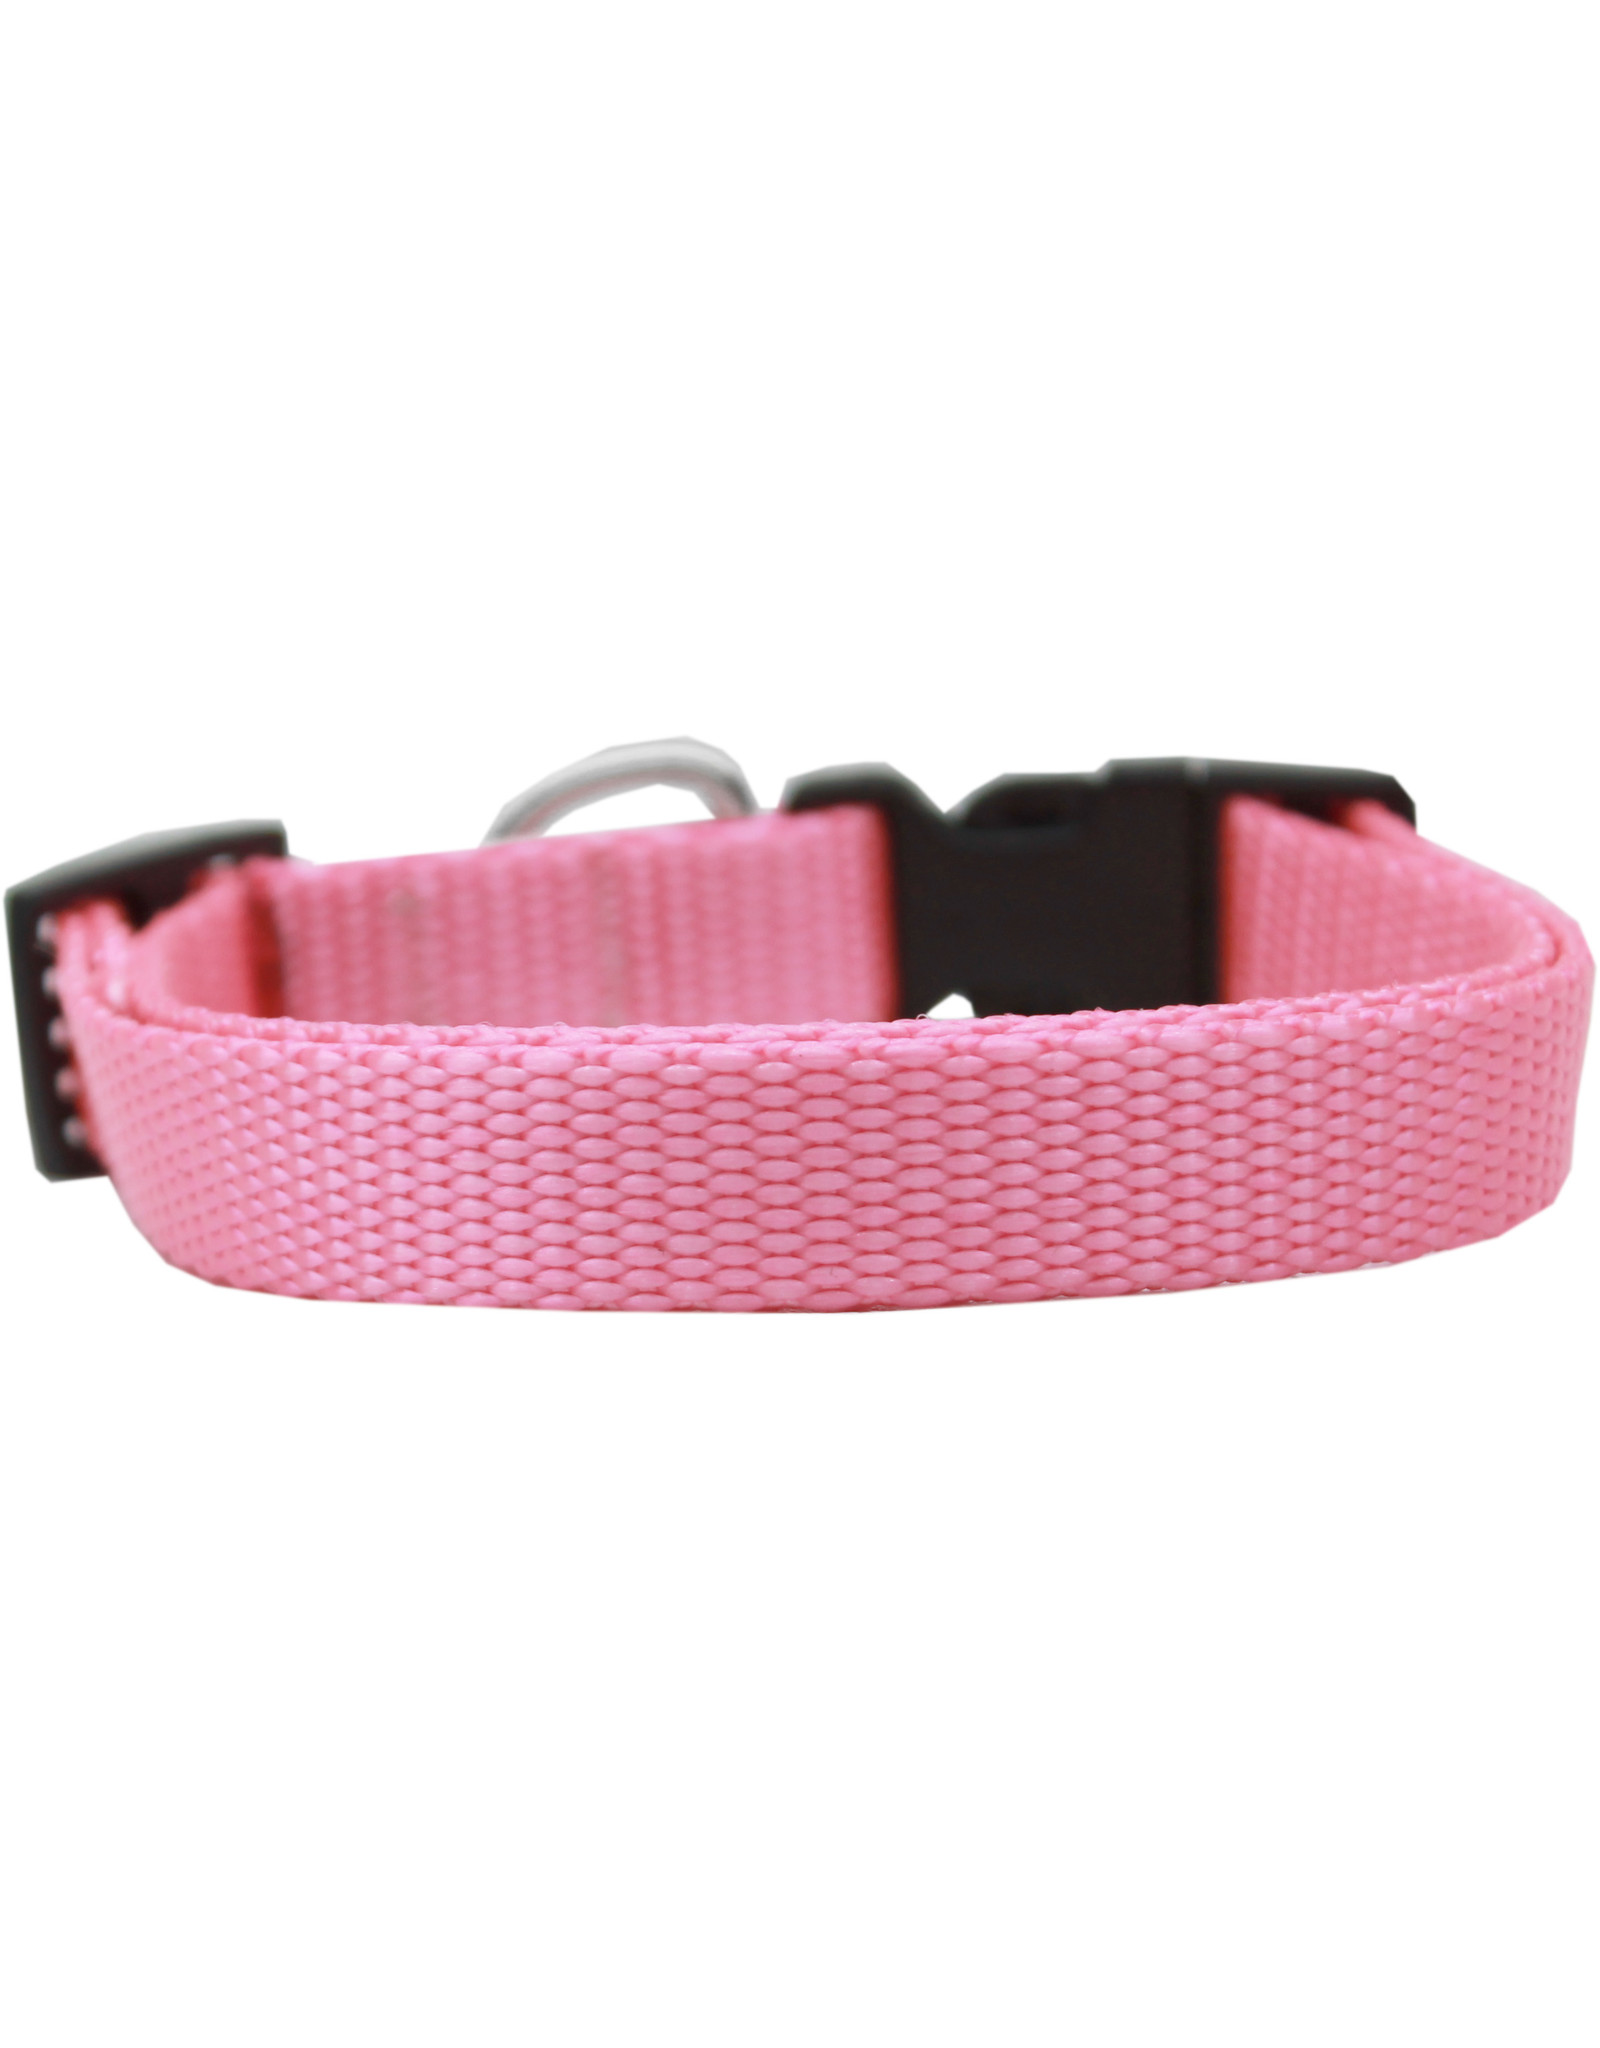 Mirage Pet Products MIRAGE PET PRODUCTS PLAIN DOG COLLAR